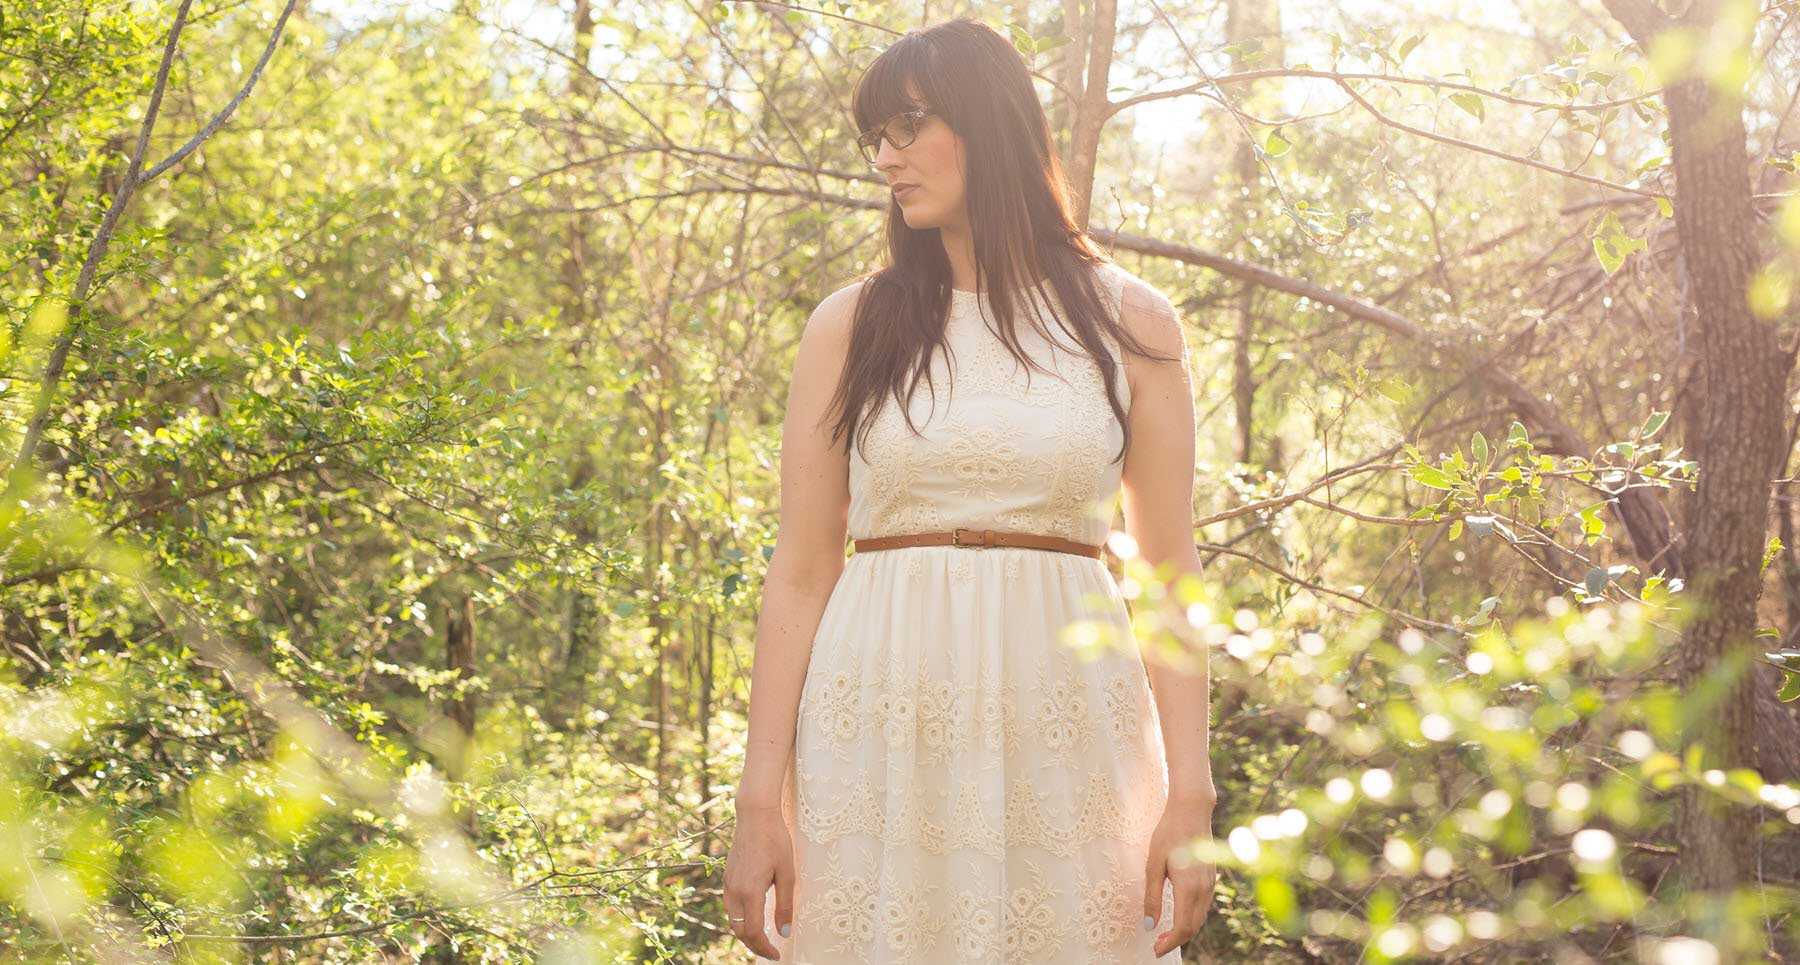 woman standing outside in a white dress struggling with fears and anxiety